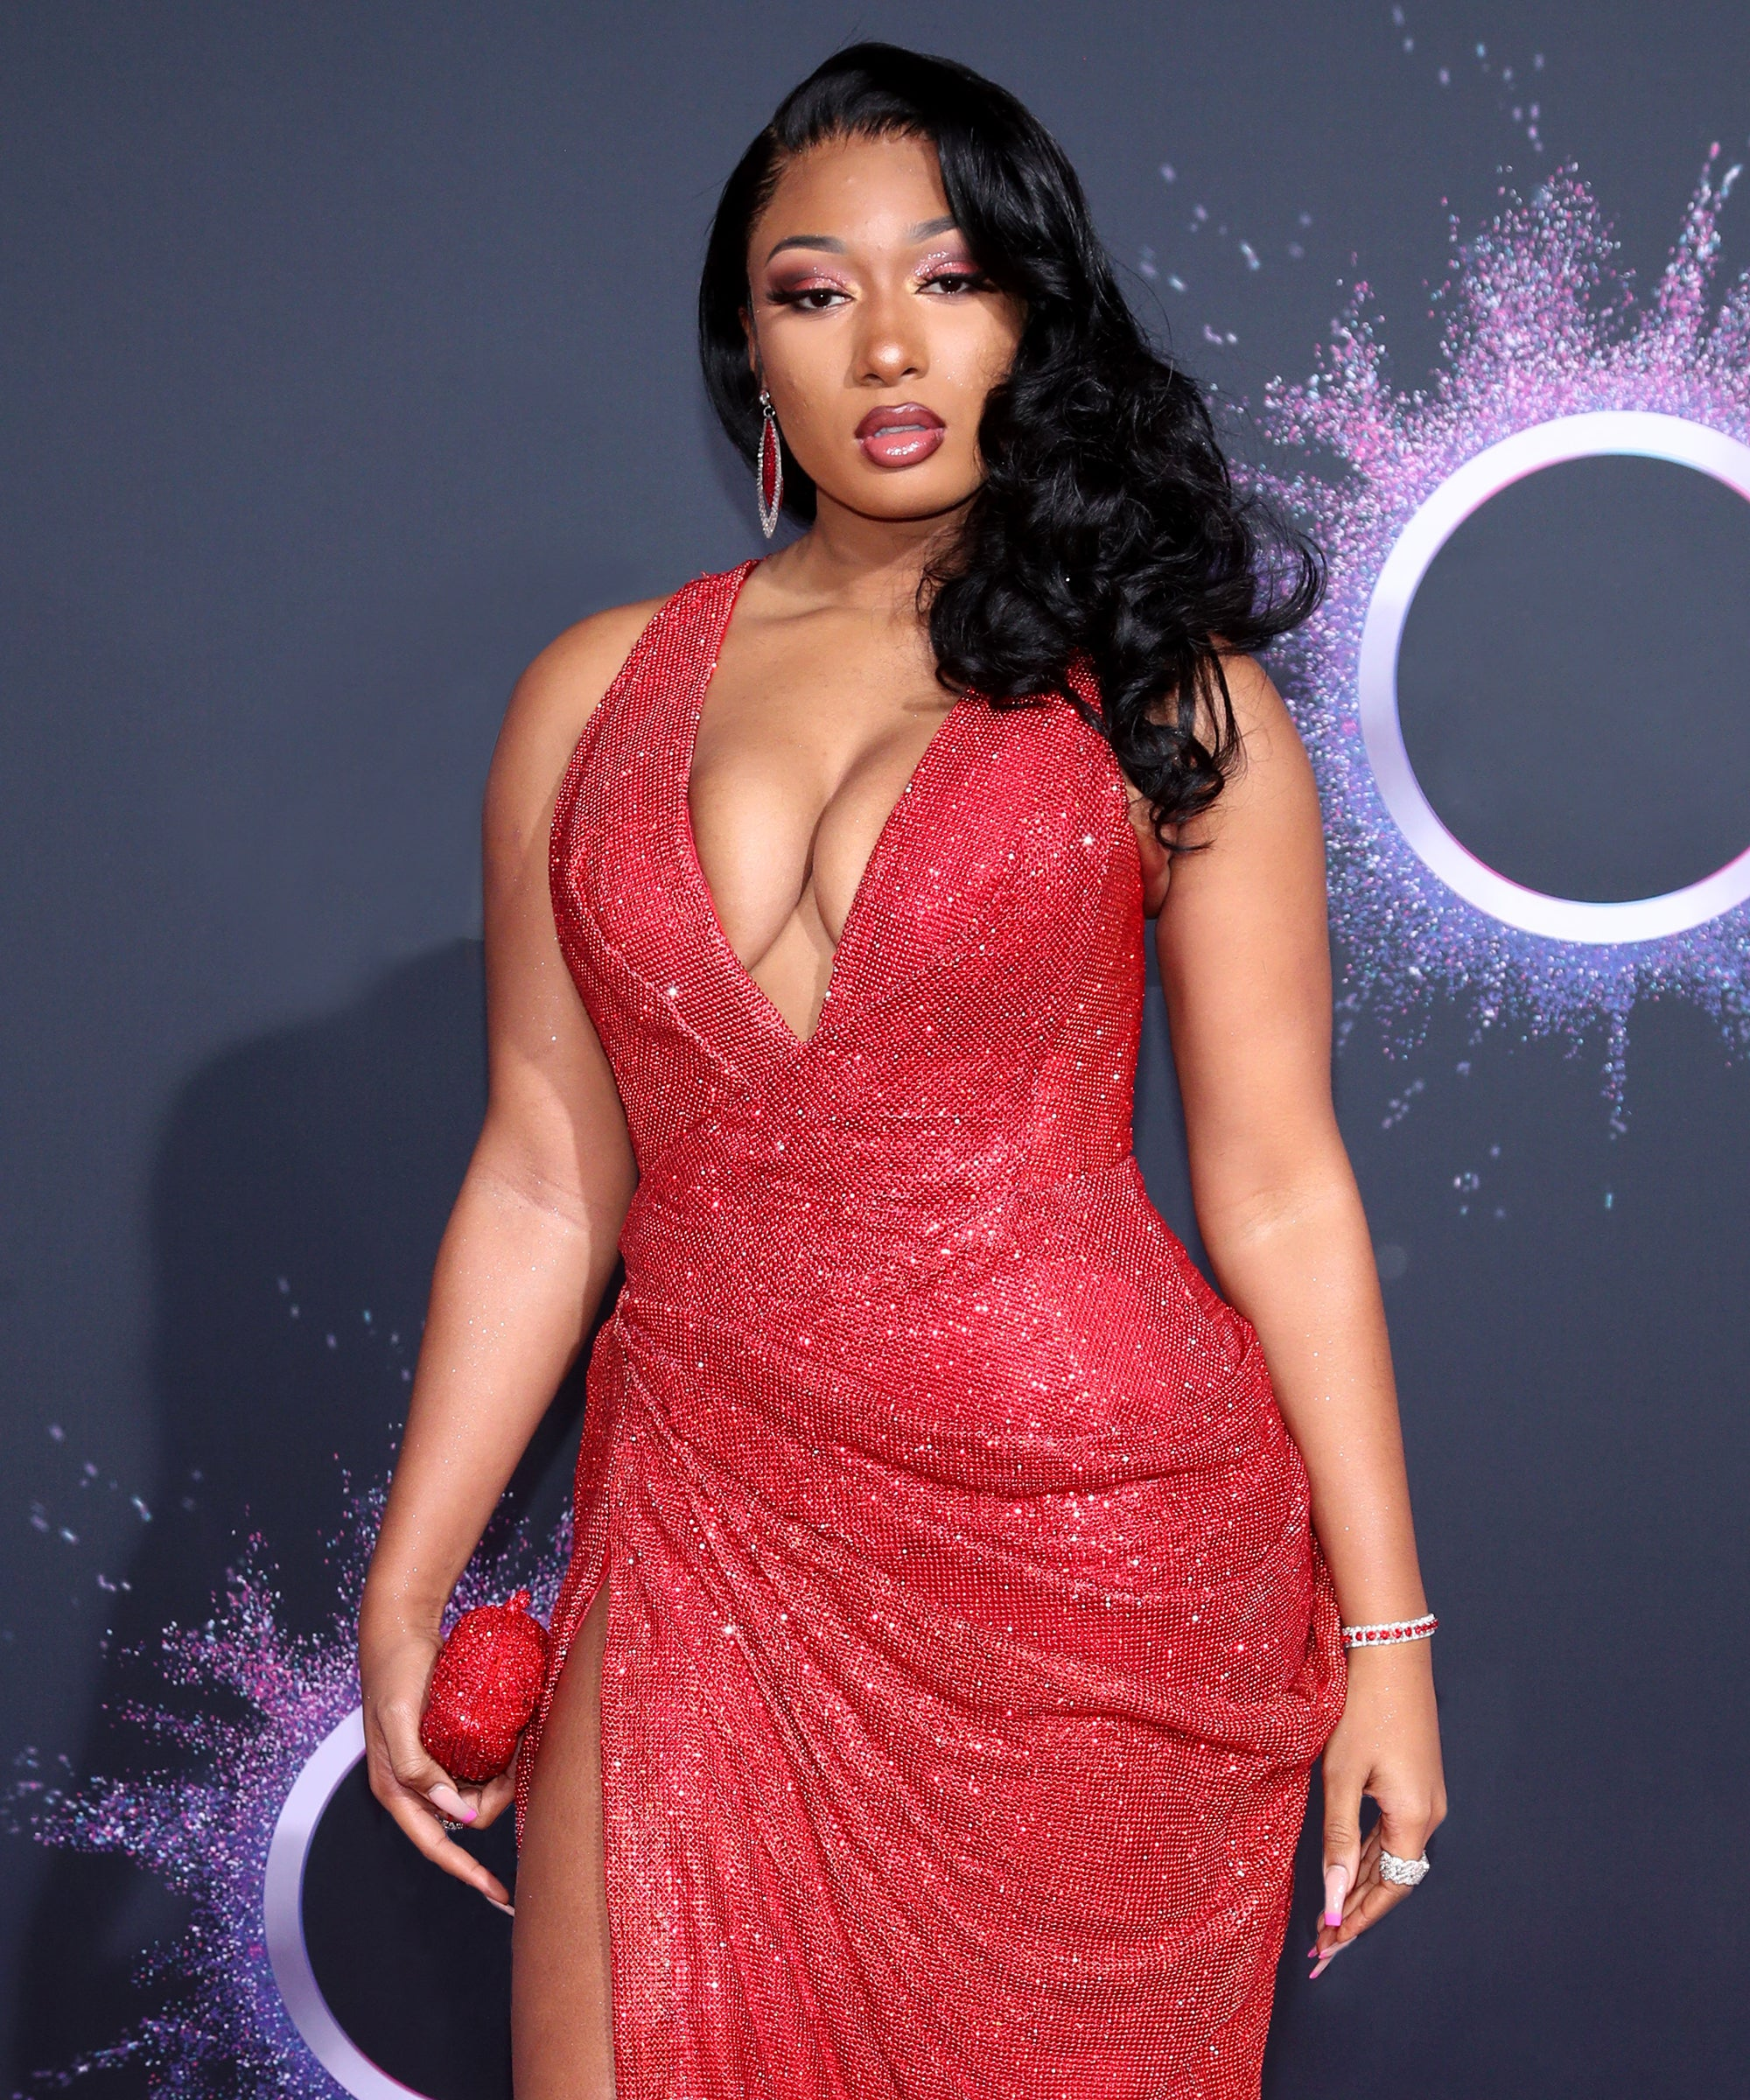 tory-lanez-charged-with-shooting-megan-thee-stallion